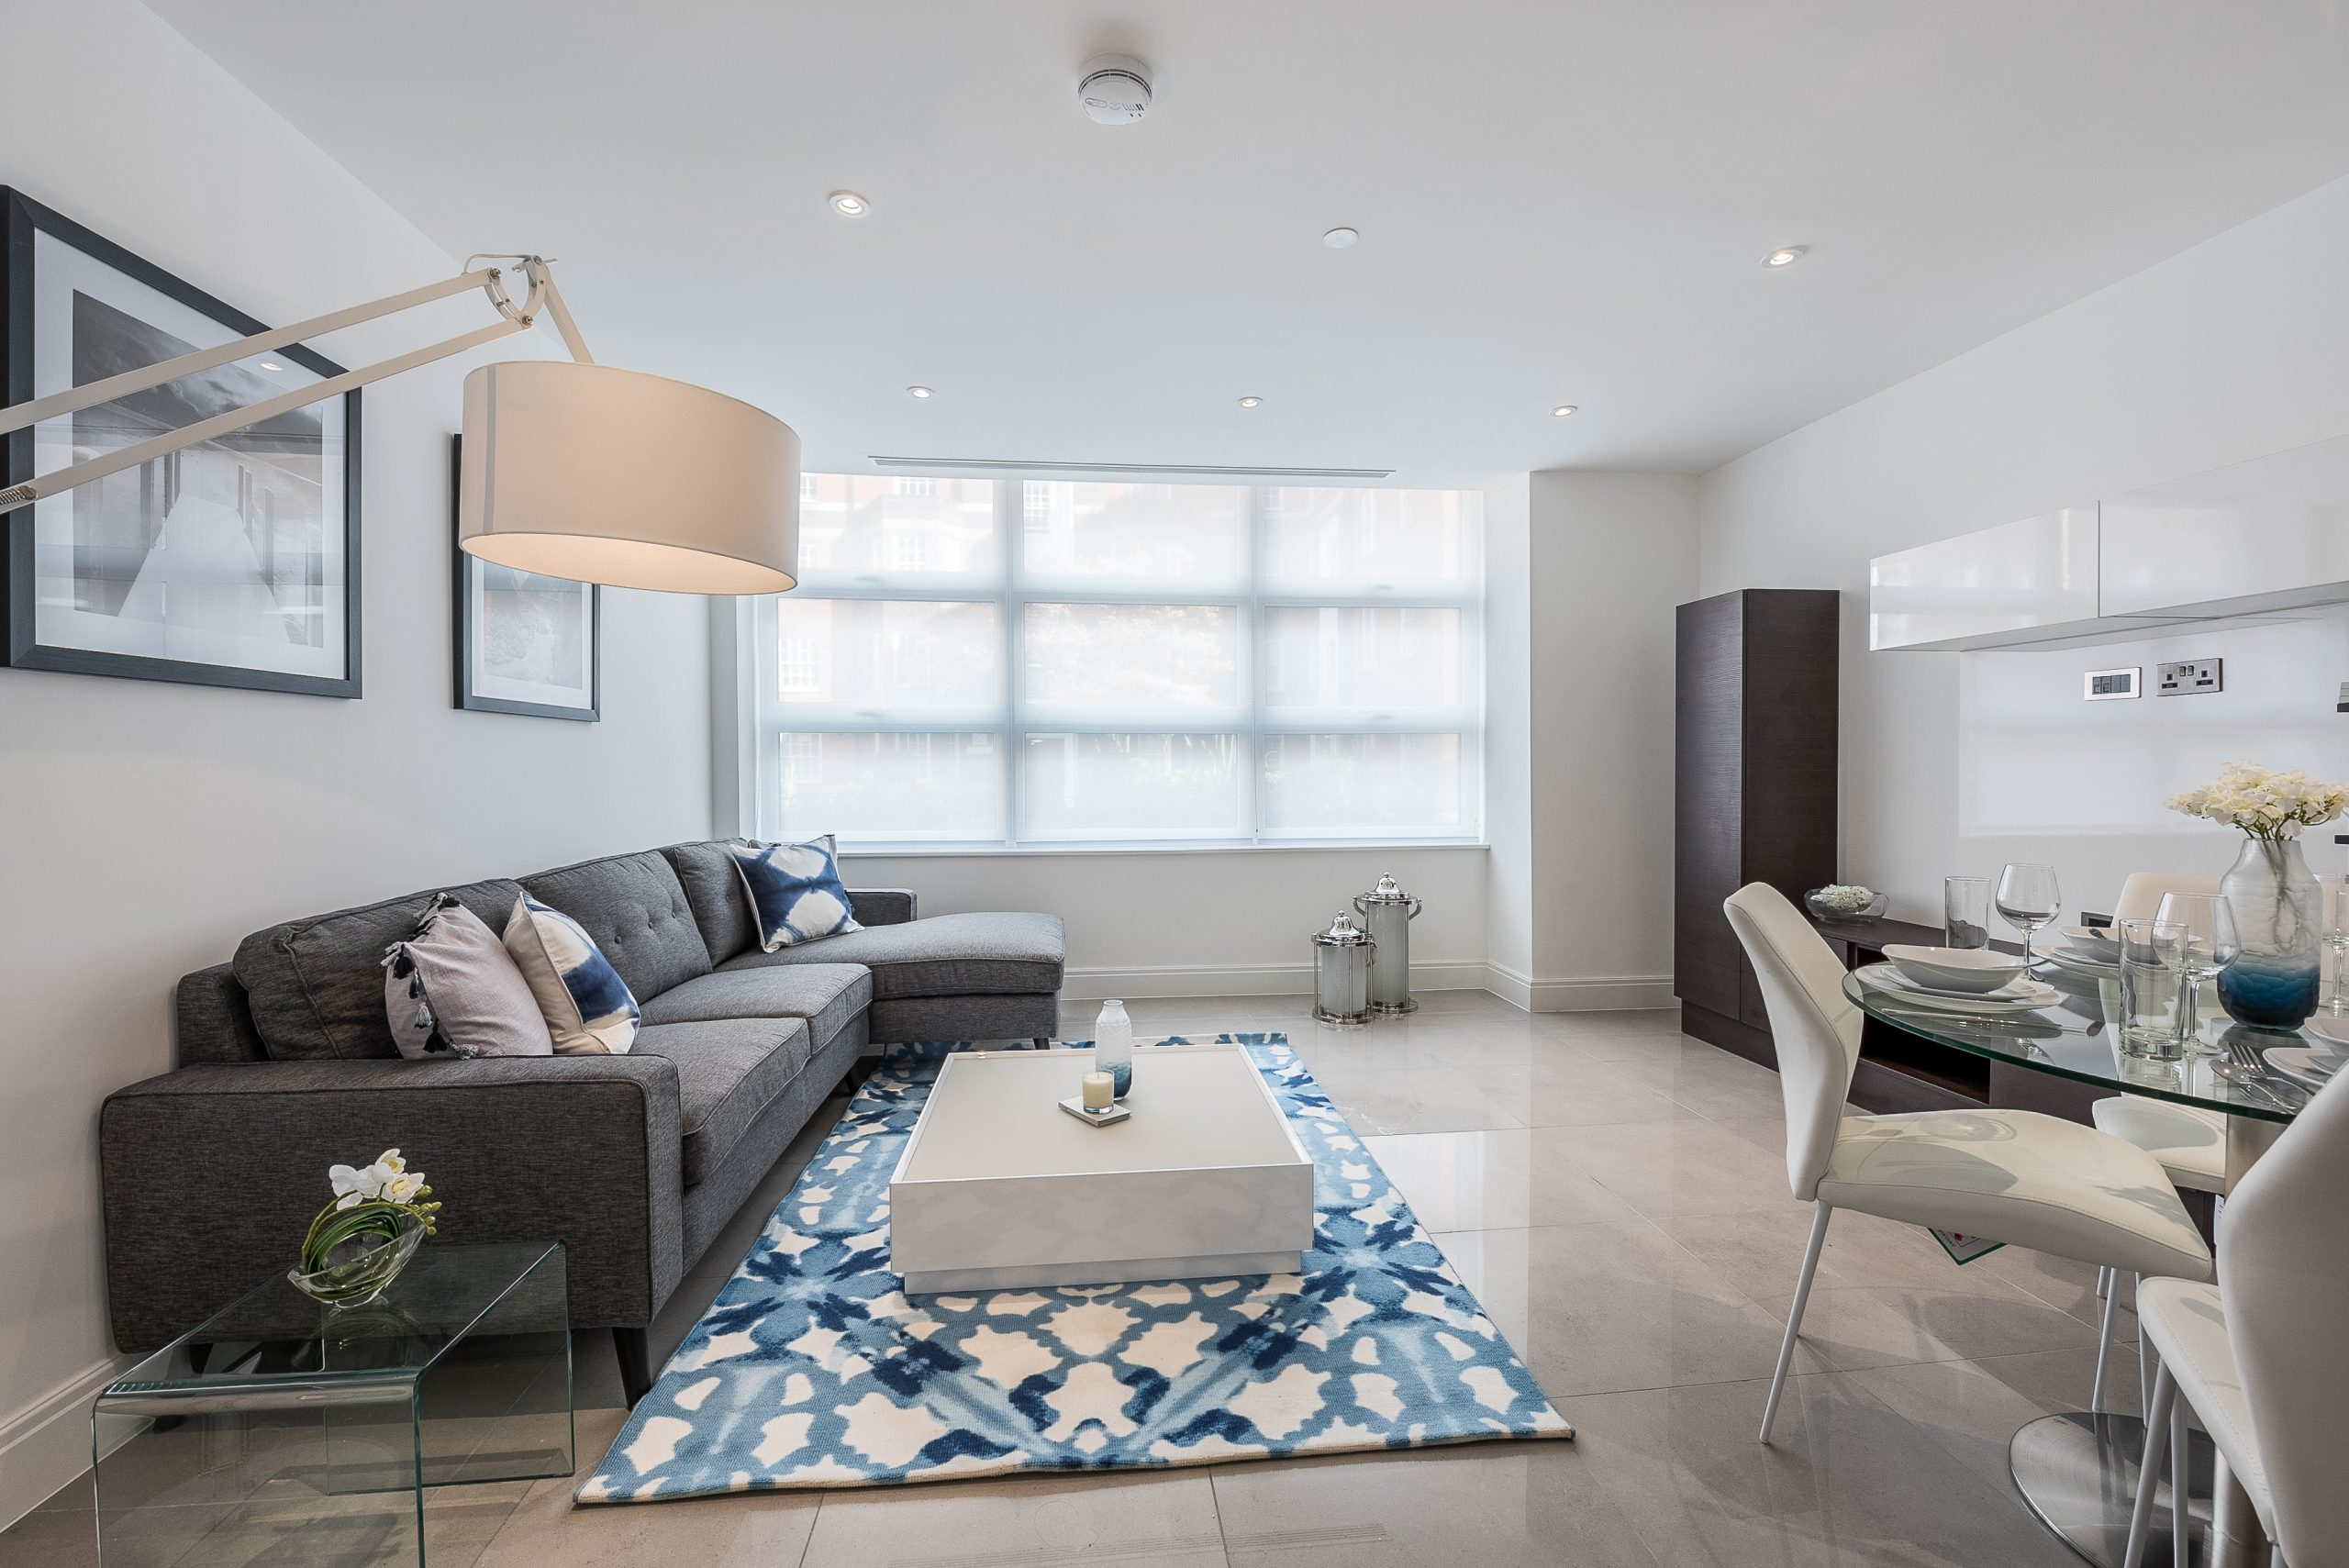 Modern Living Room with Built-in Wardrobe for a Small Bedroom Chorleywood